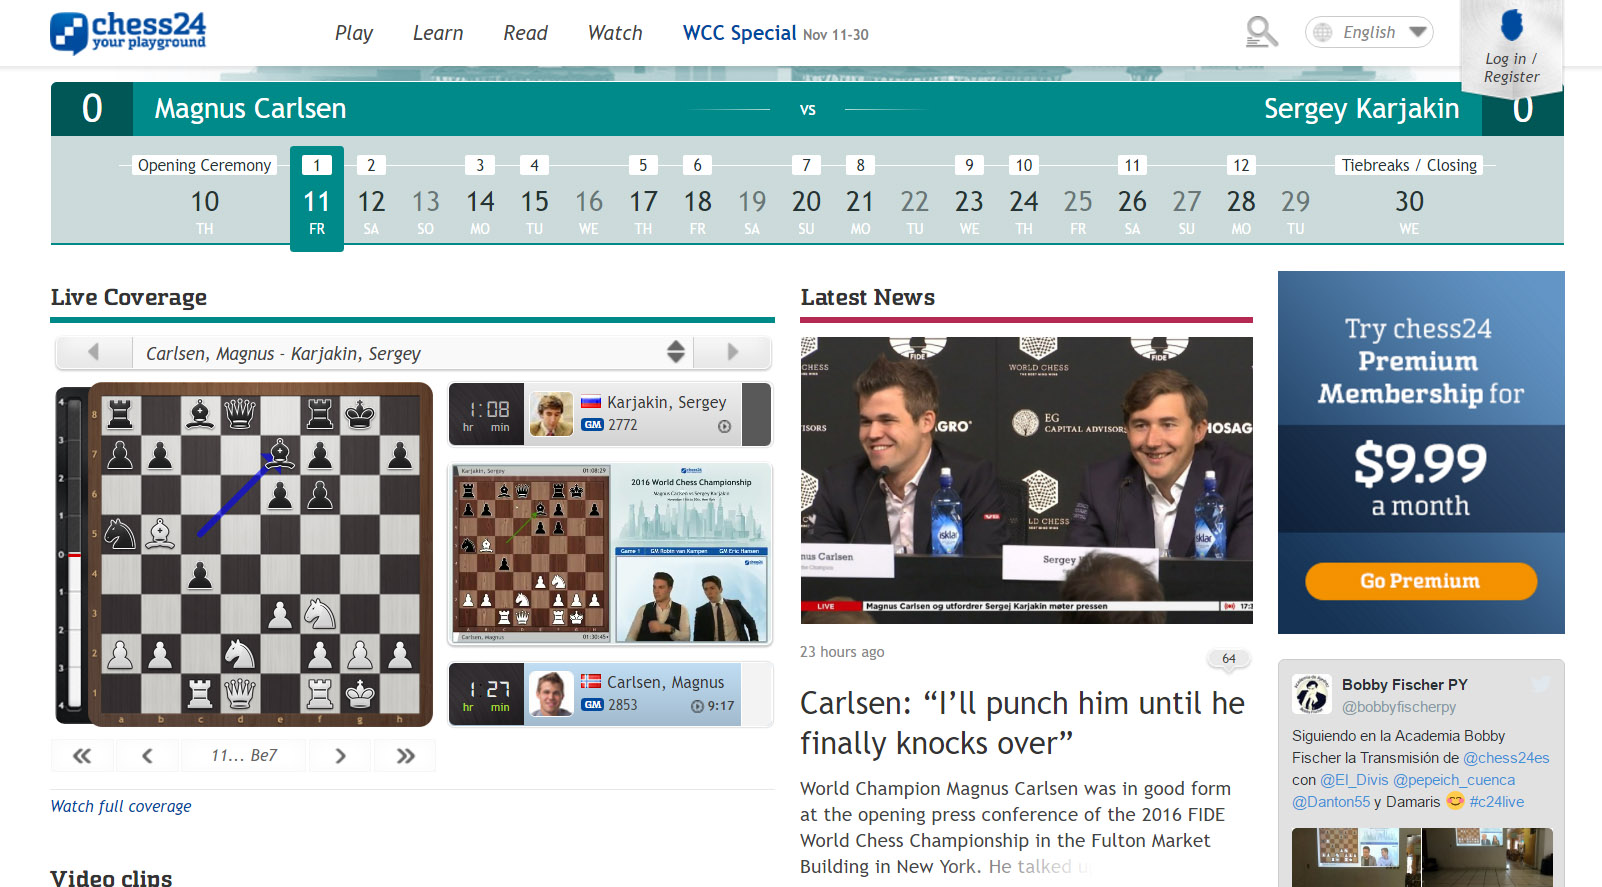 World Chess Championship (Game 1)